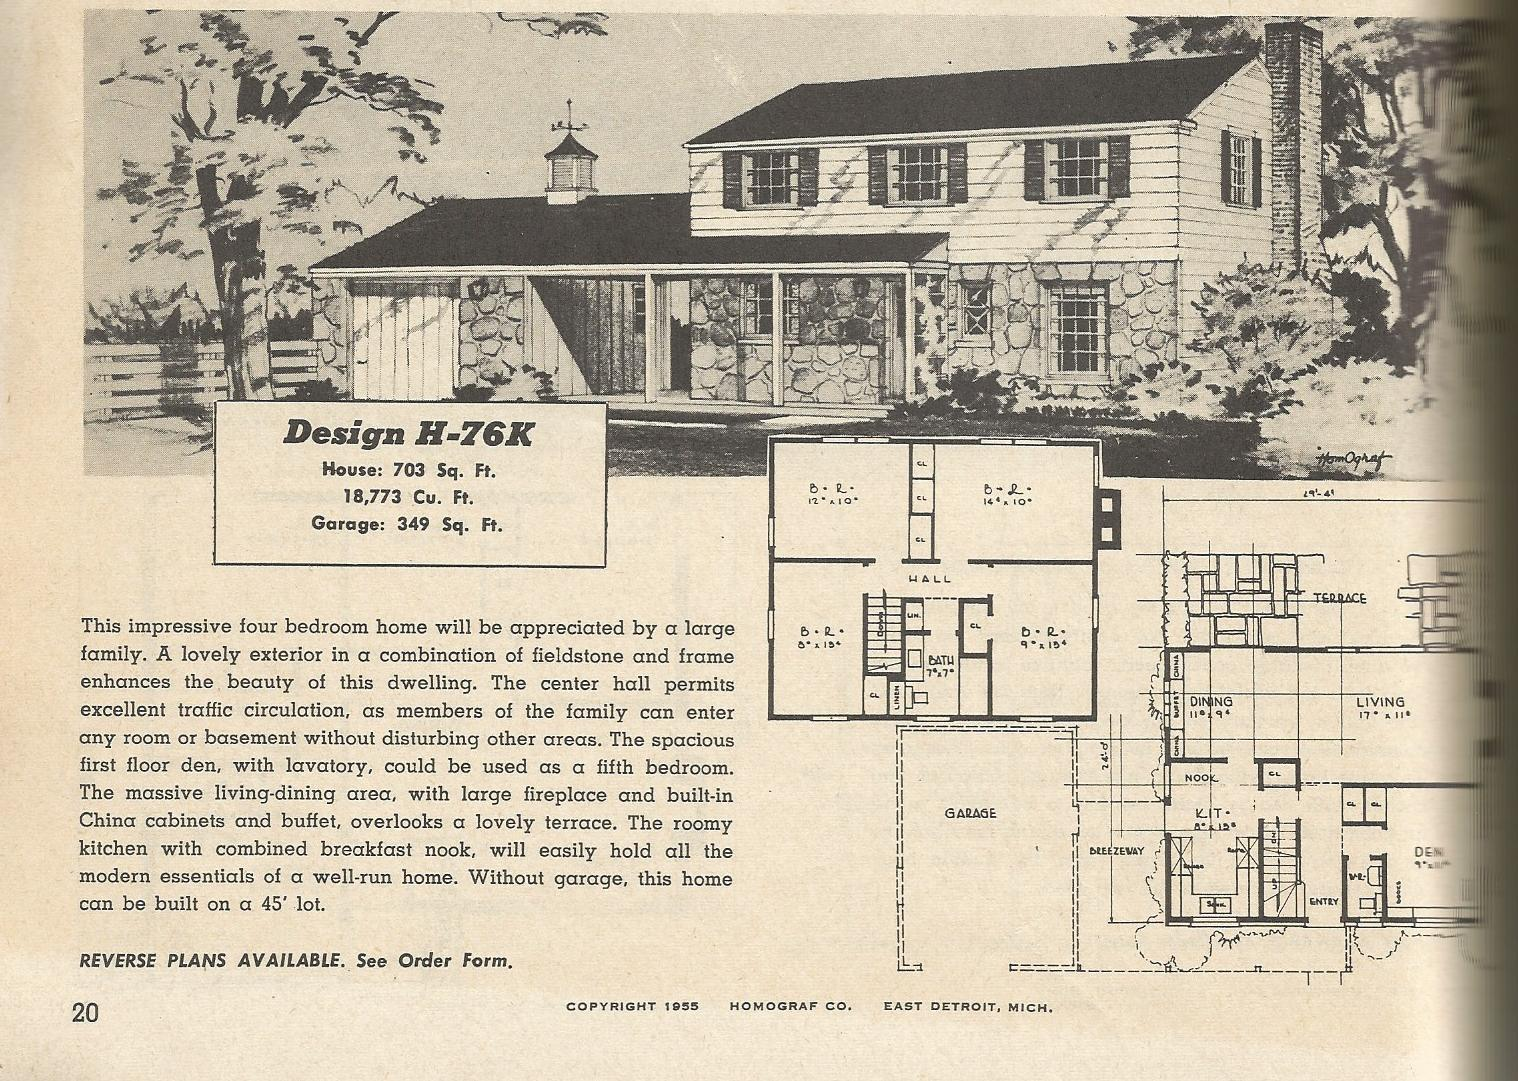 Vintage house plans 76 antique alter ego for Vintage floor plans